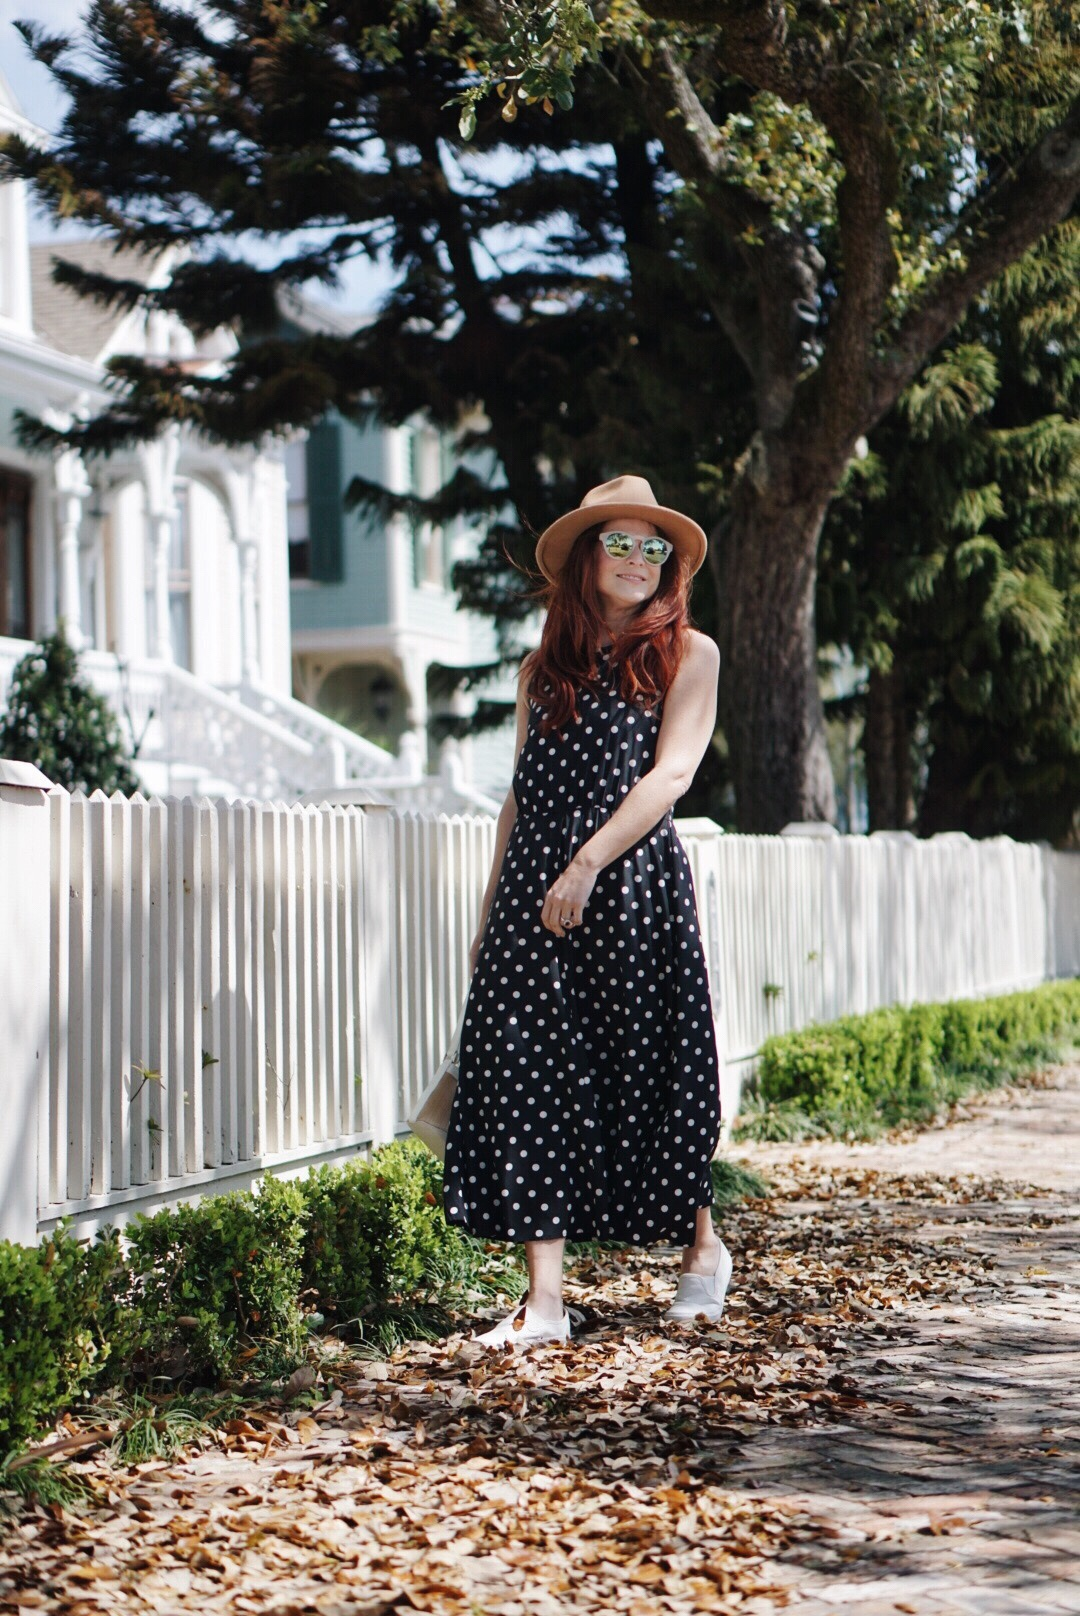 sundresses, polka dots, Galveston, Tx, sneakers, brown hat outfits, dresses with polka dots